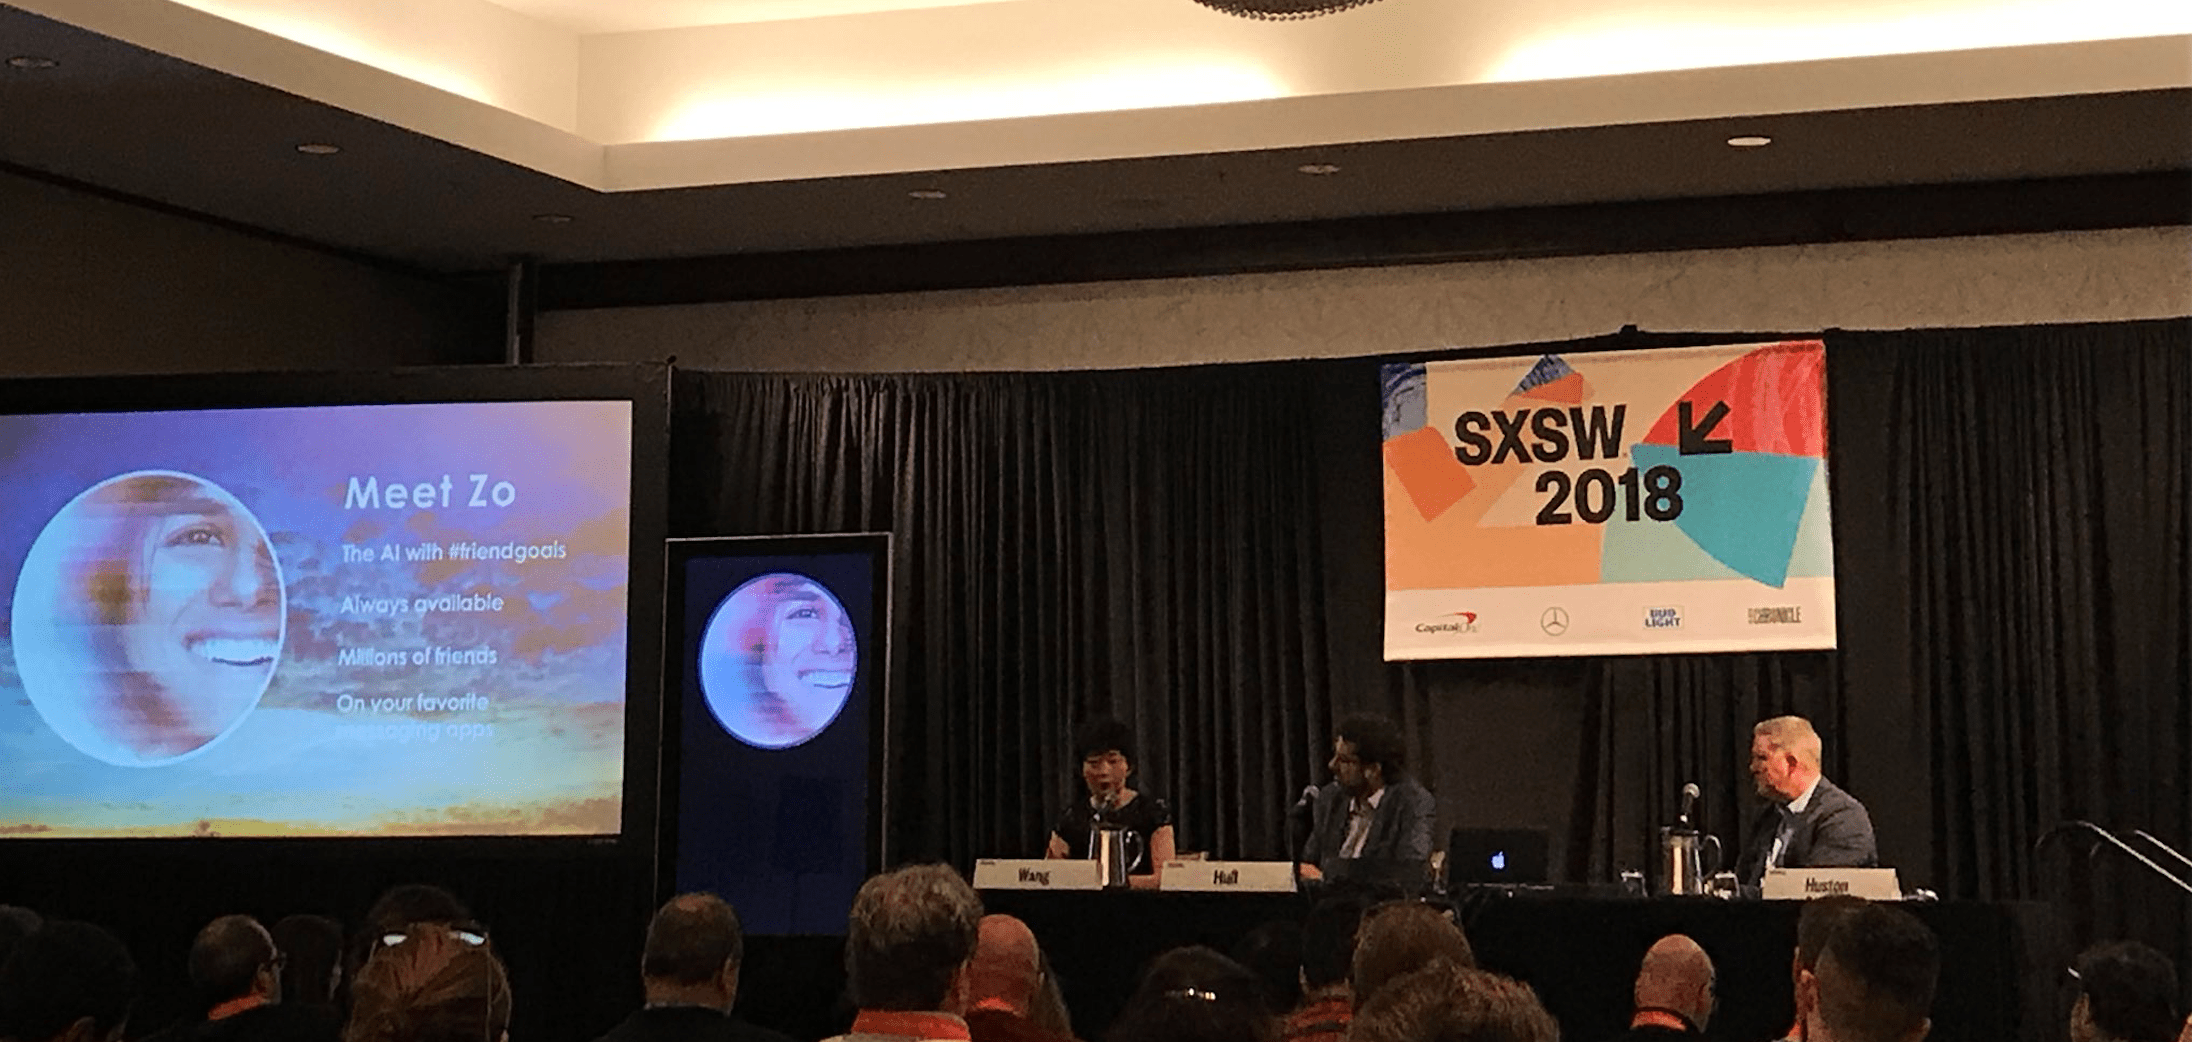 iProspect Brings AI to SxSW